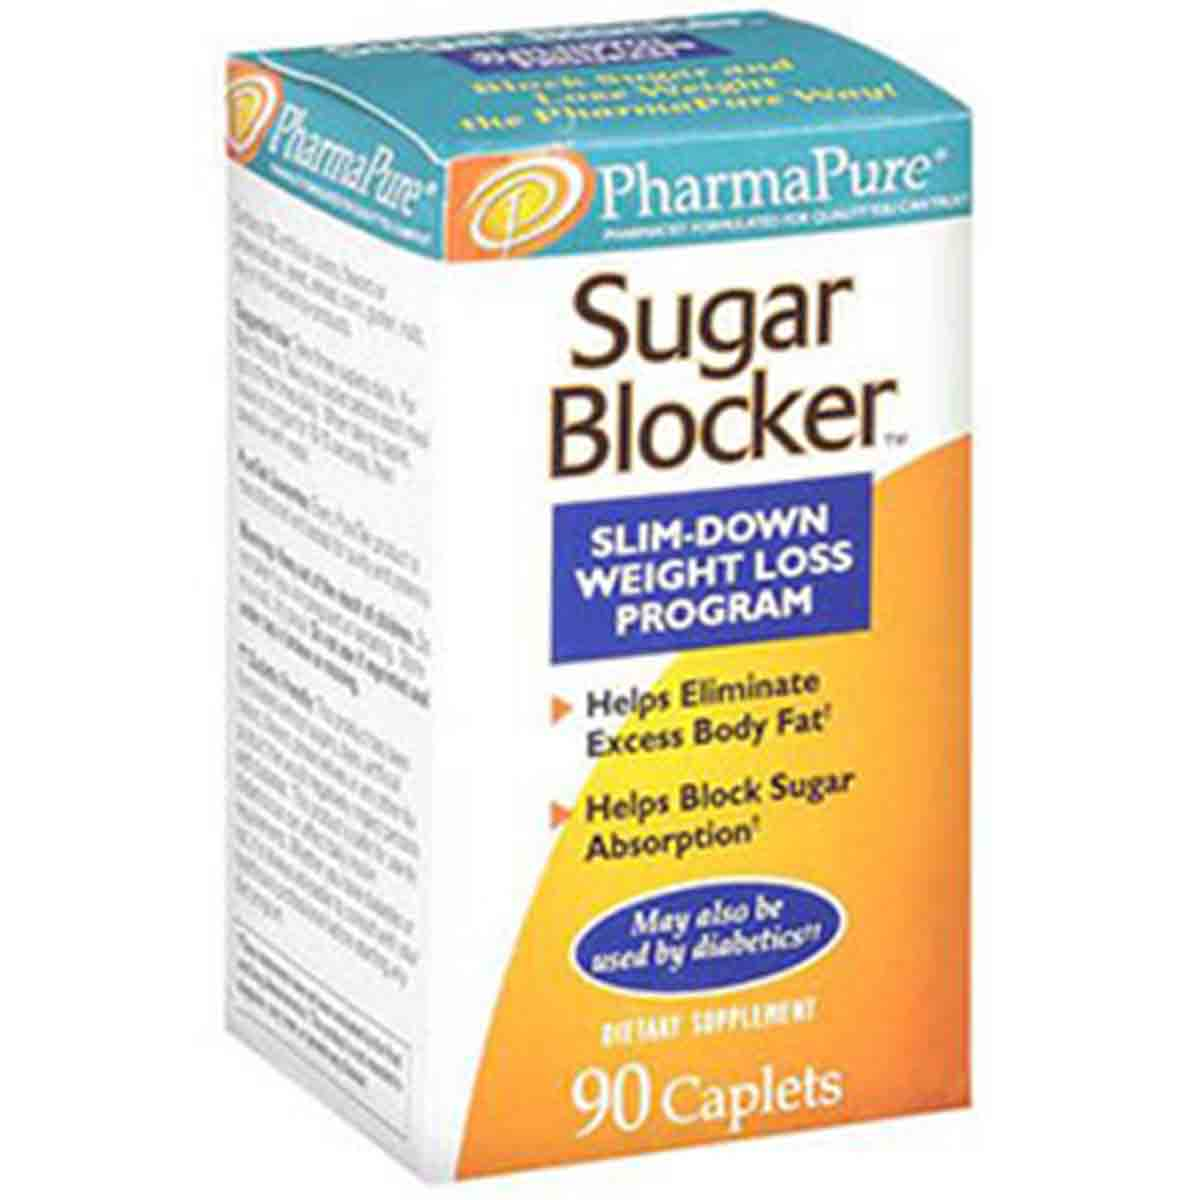 Pharmapure Sugar Blocker